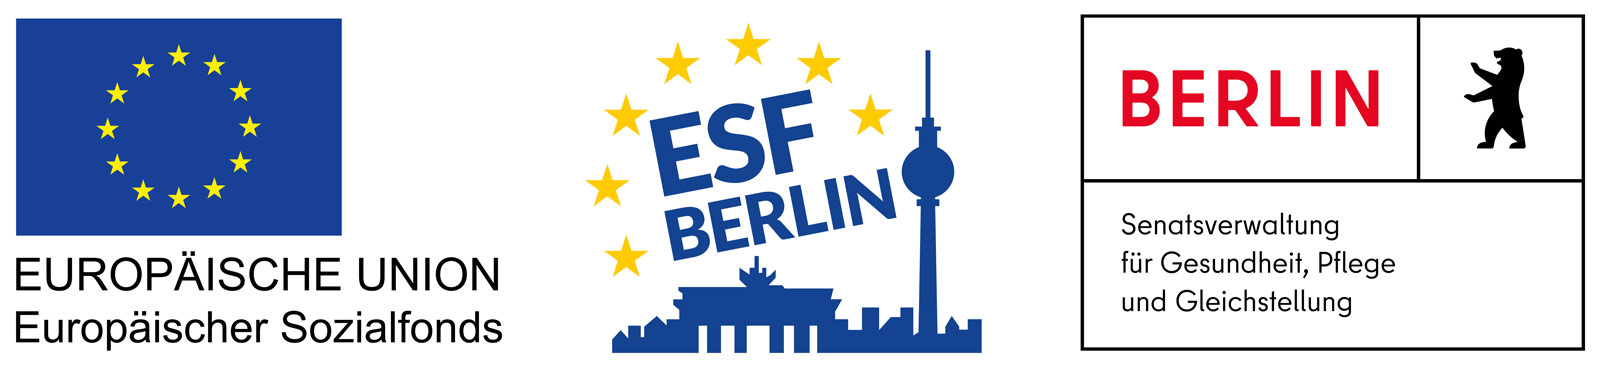 The Goldrausch Künstlerinnenprojekt is funded by the European Social Fund (ESF) and the Senate Department for Health, Long-Term Care and Gender Equality.